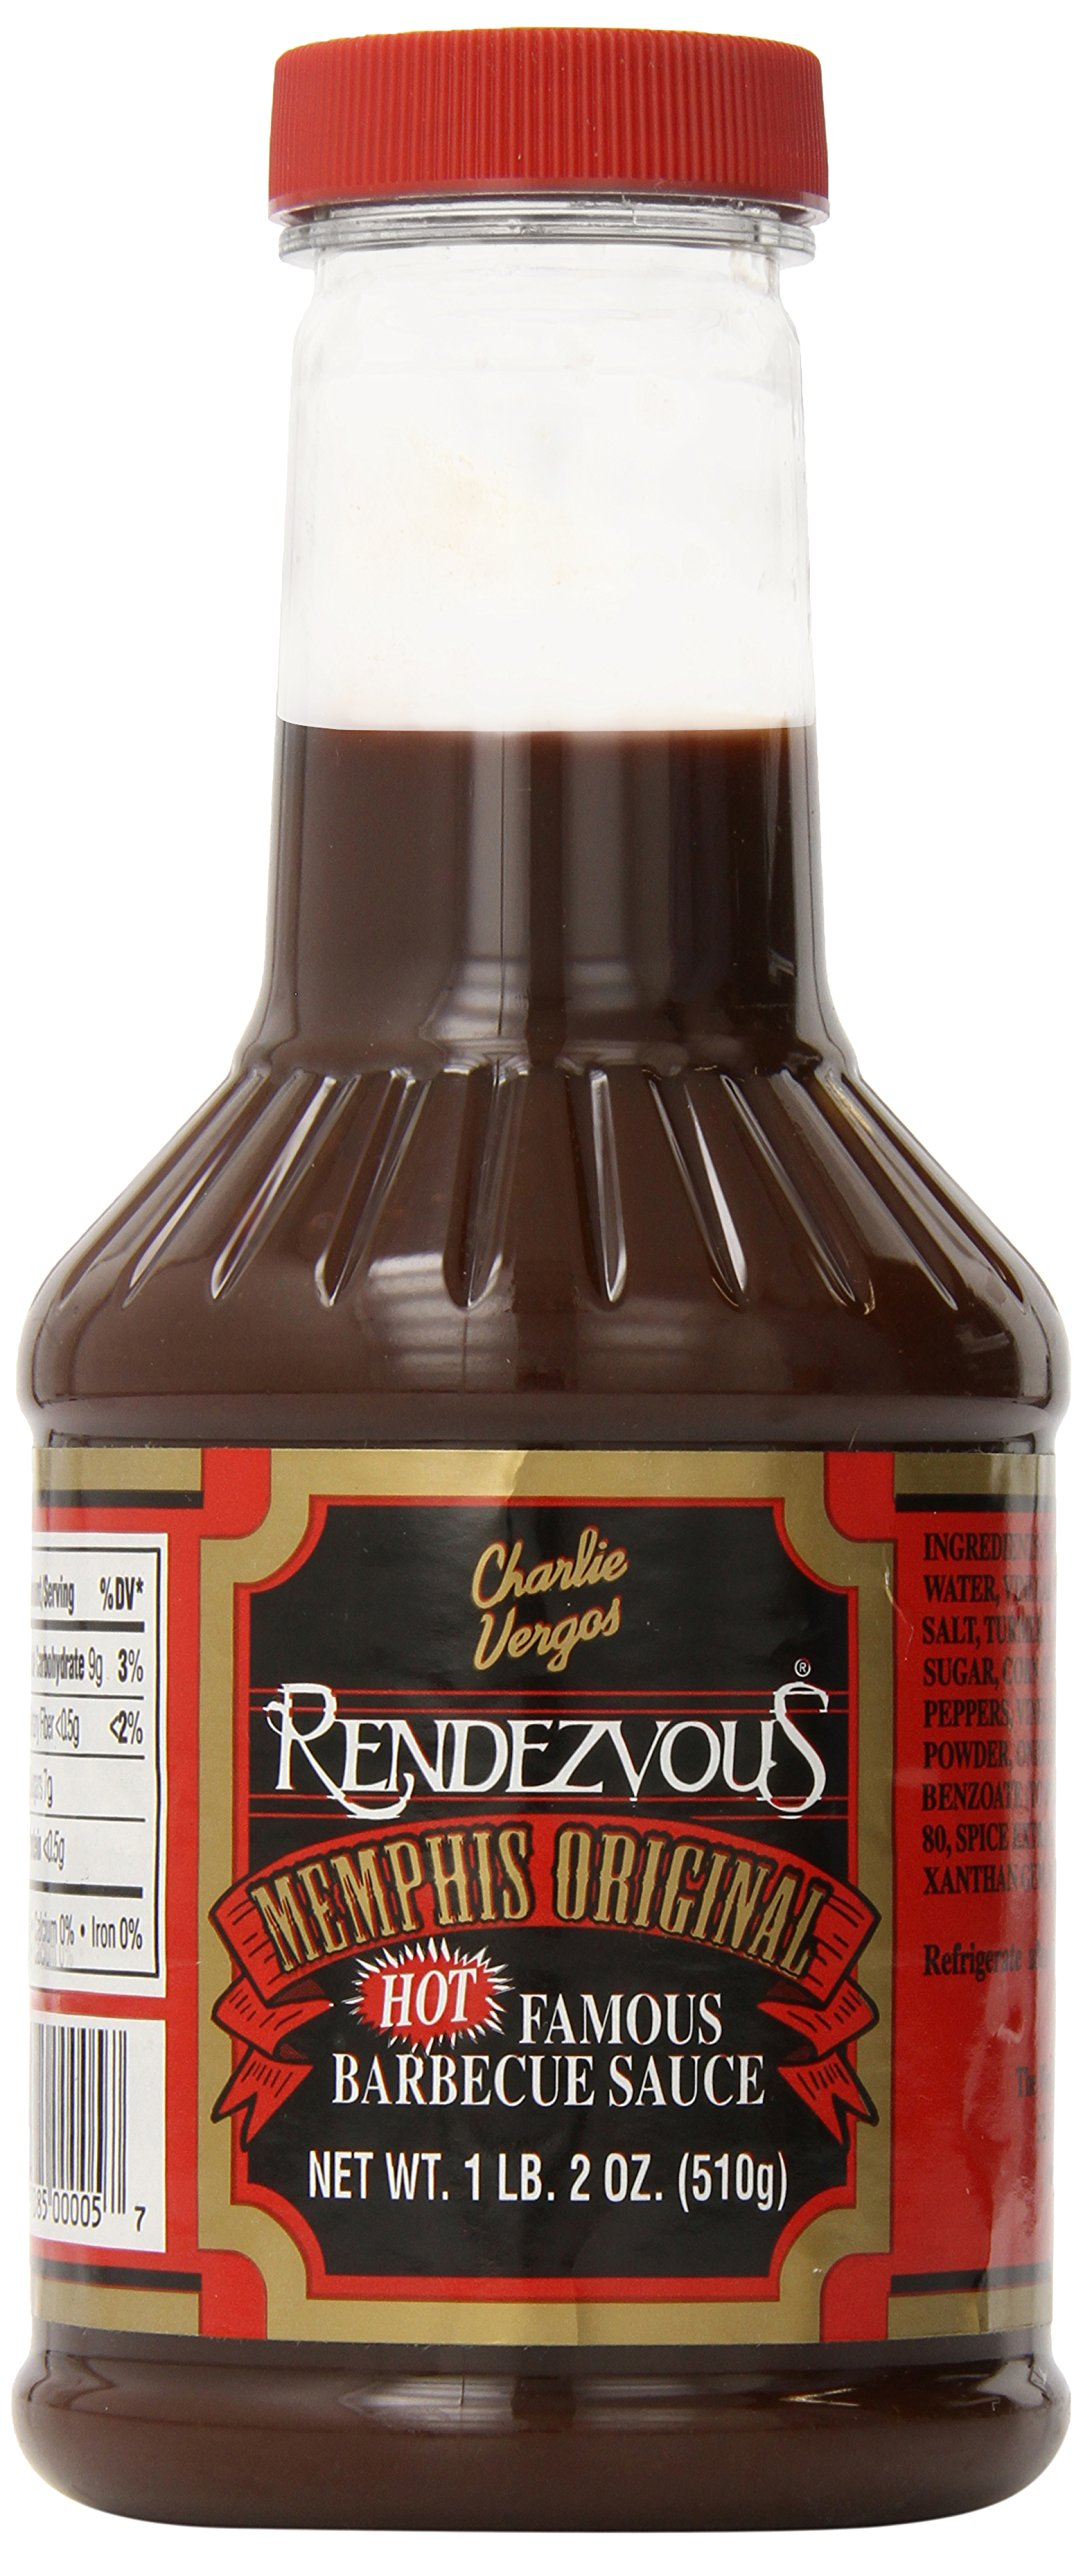 Charlie Vergos Rendezvous Hot Famous Memphis Barbecue Sauce * HOT 1lb 2oz